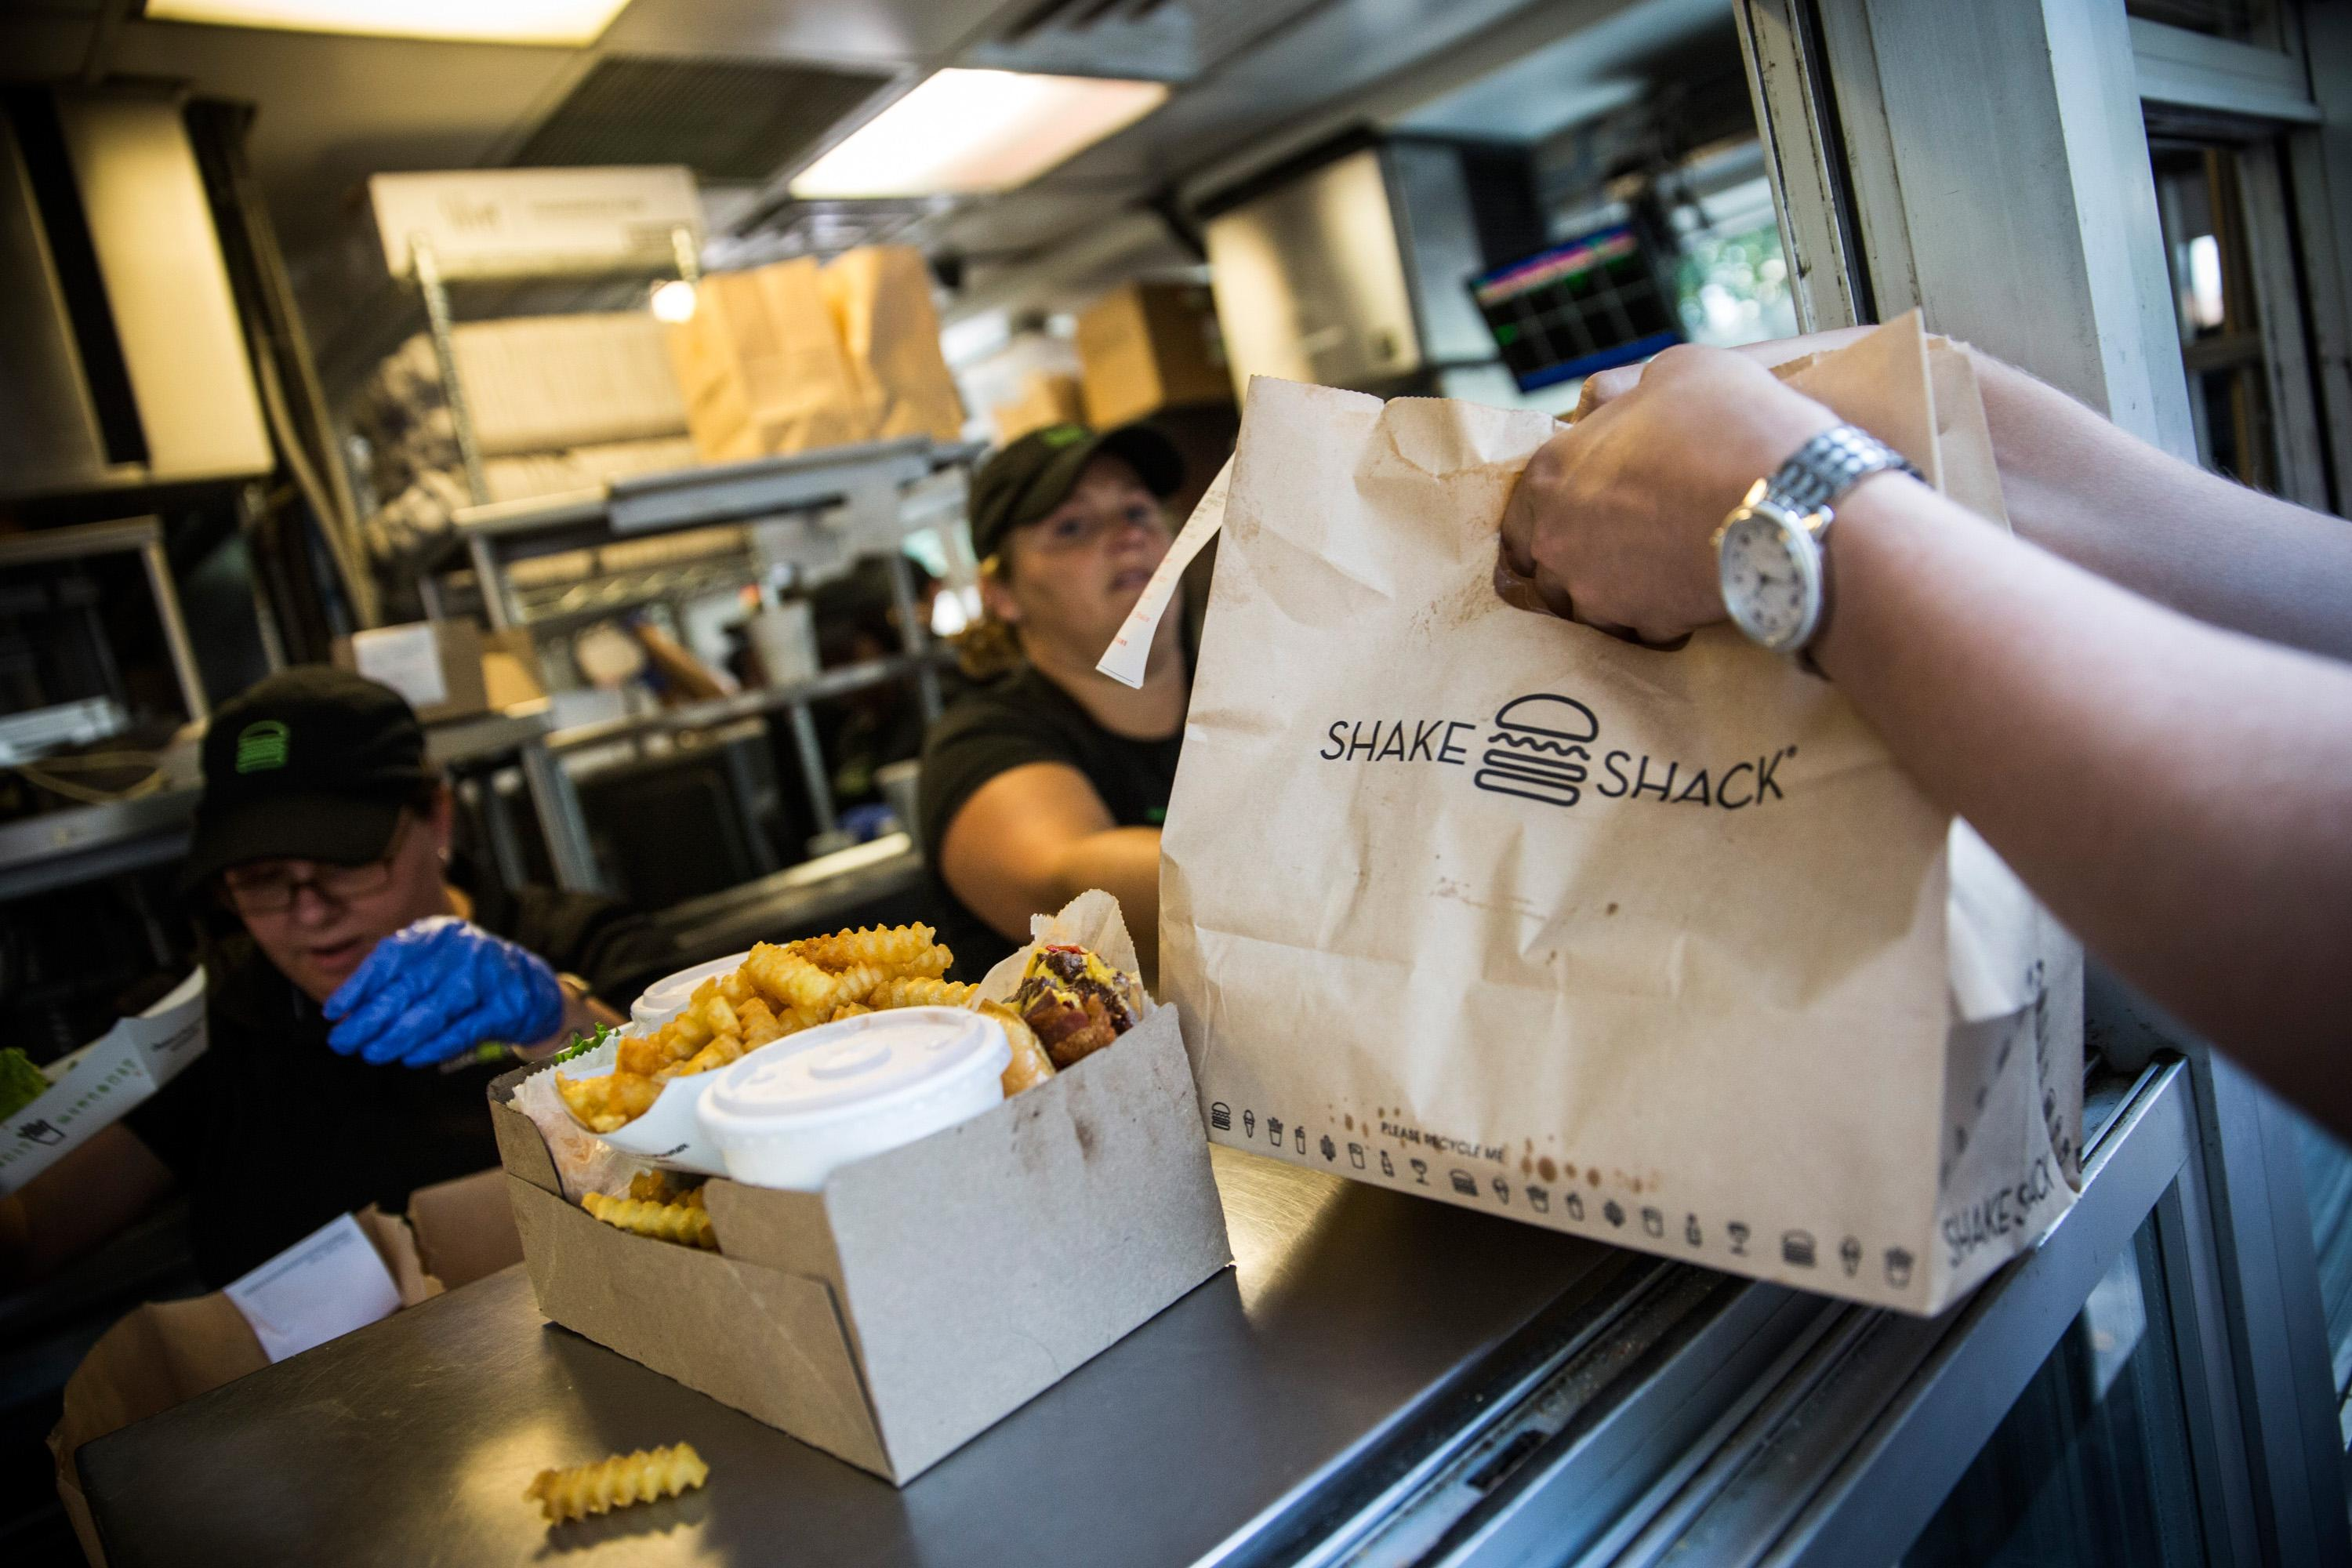 Schumer to FDA: Remove chemicals from fast-food packaging